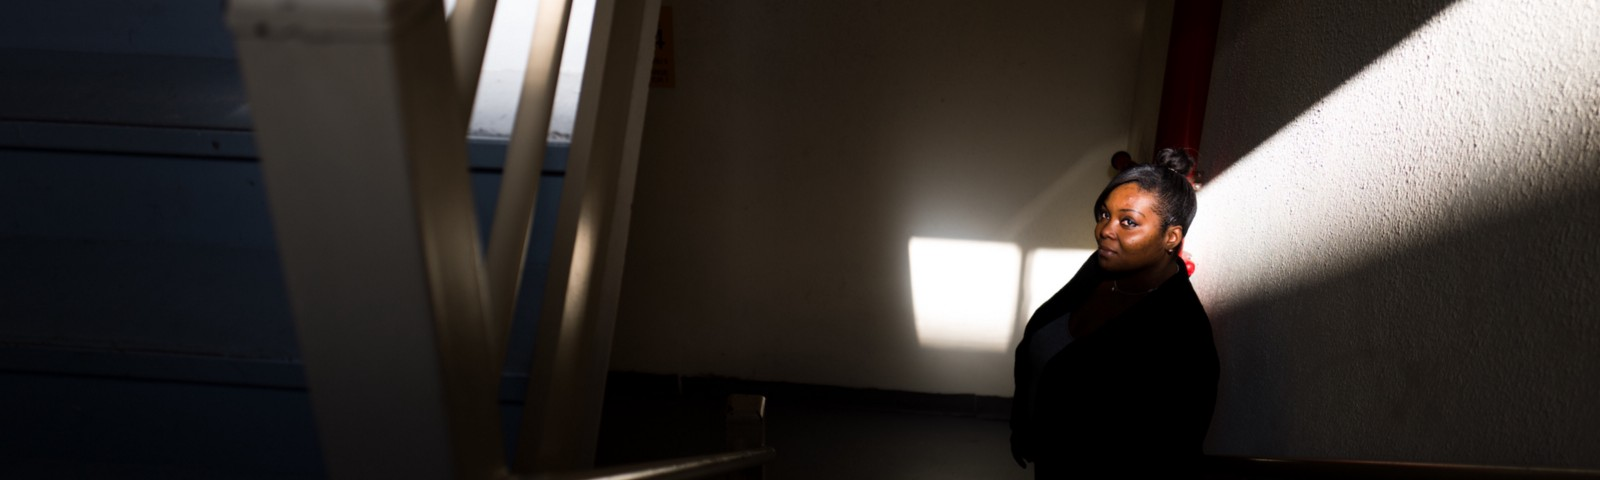 Arlene in a dark stairwell, her face highlighted by a shaft of light